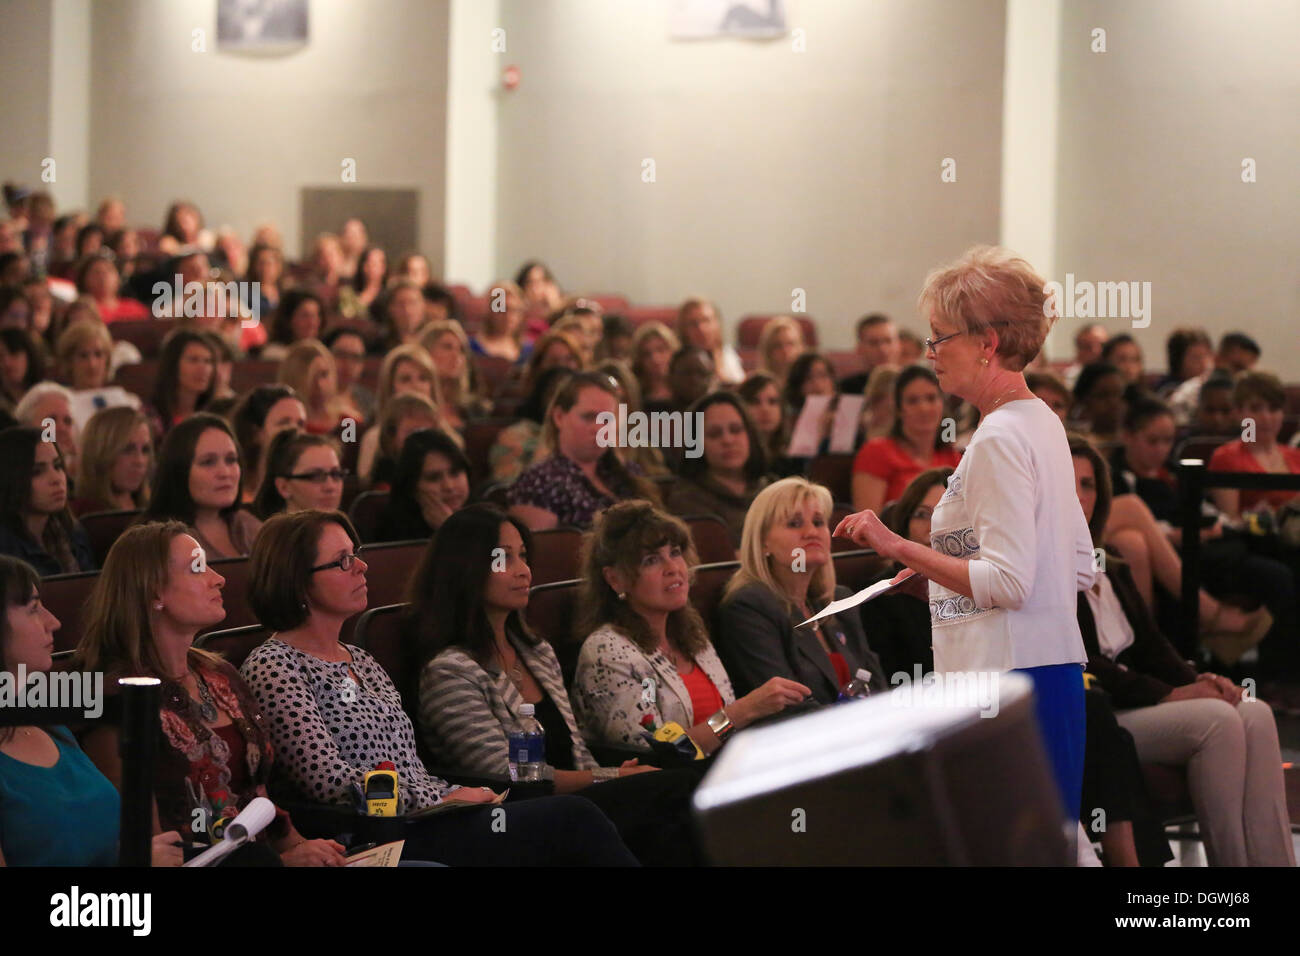 First Lady of the Marine Corps Mrs. Bonnie Amos meets with Marine spouses during a seminar at Marine Corps Air Station Miramar, - Stock Image